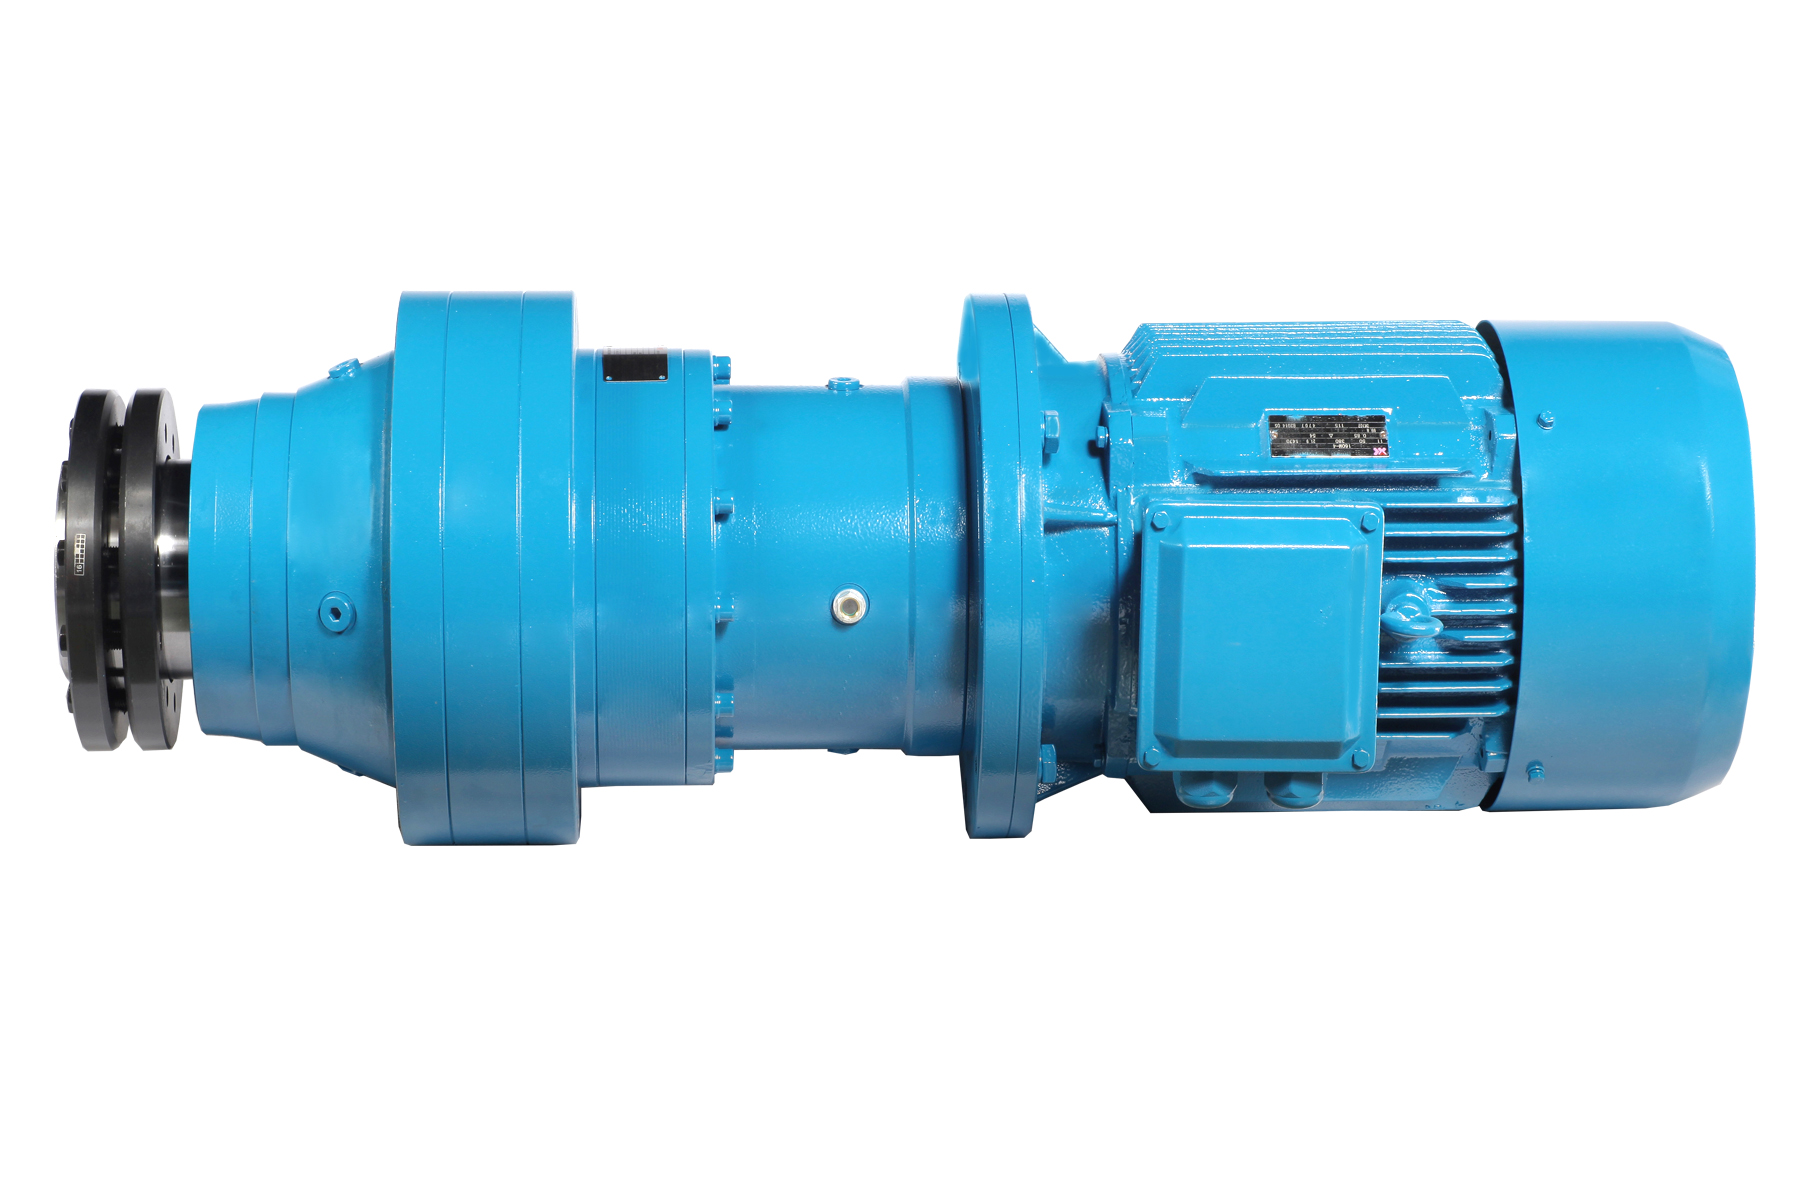 Planetary Gearbox Planet Gear Speed Reducers H92cf695cbefc4d2d9041eaf3701c39a86